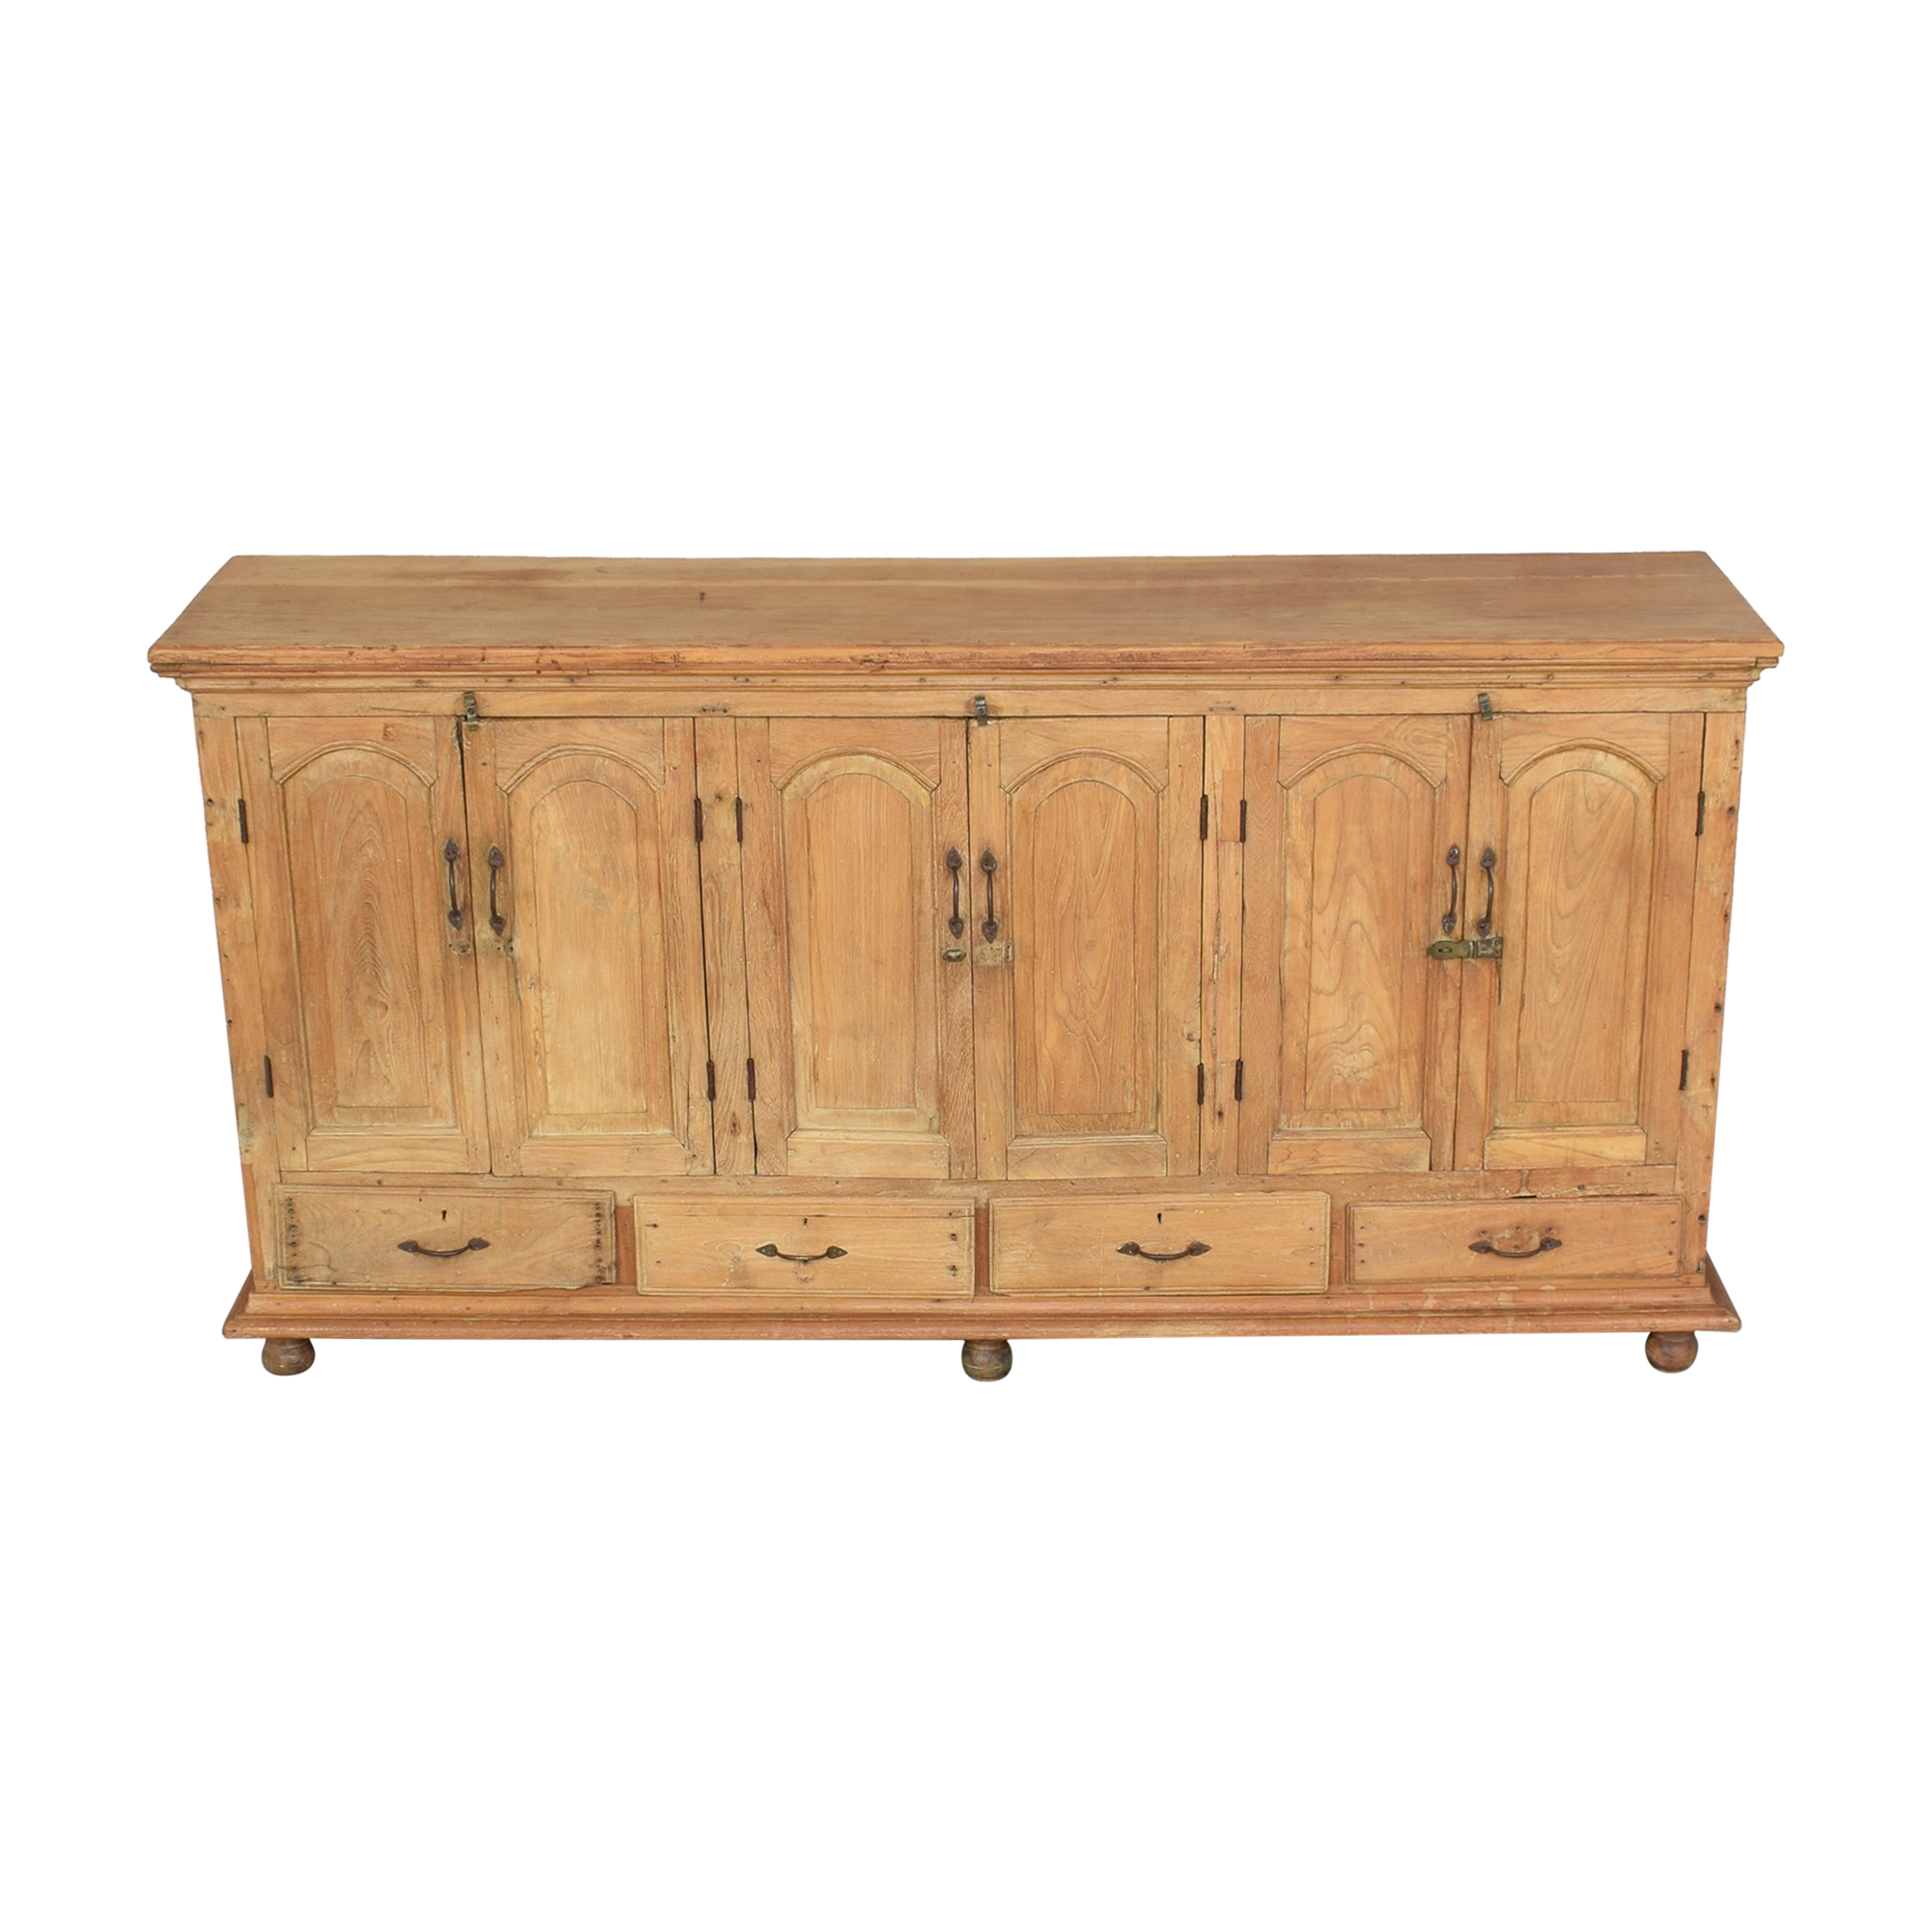 ABC Carpet & Home ABC Carpet & Home Rustic Sideboard